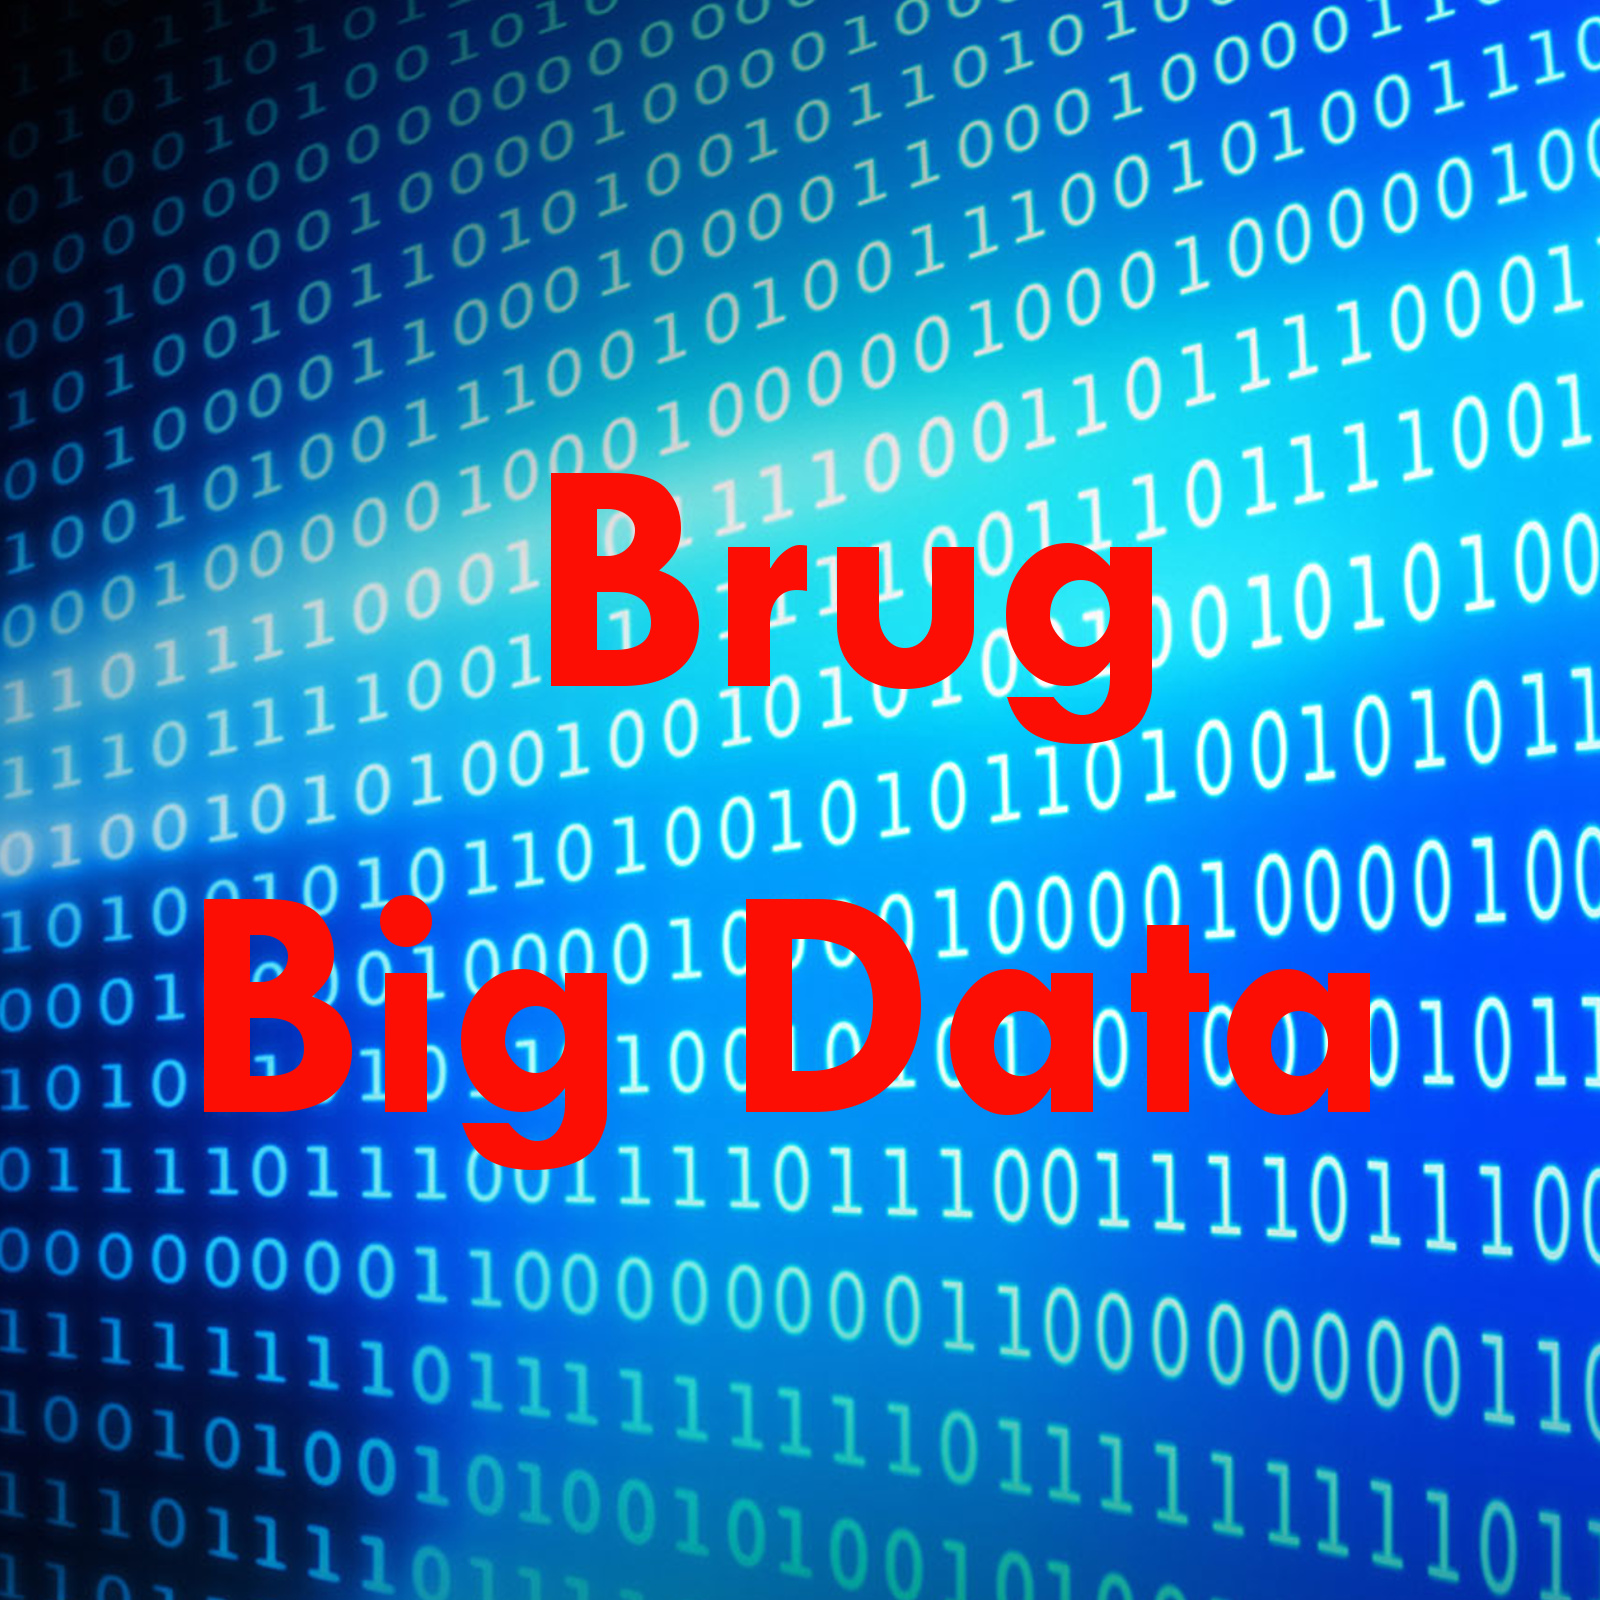 Brug Big Data Episode 2 - 16.28 min.